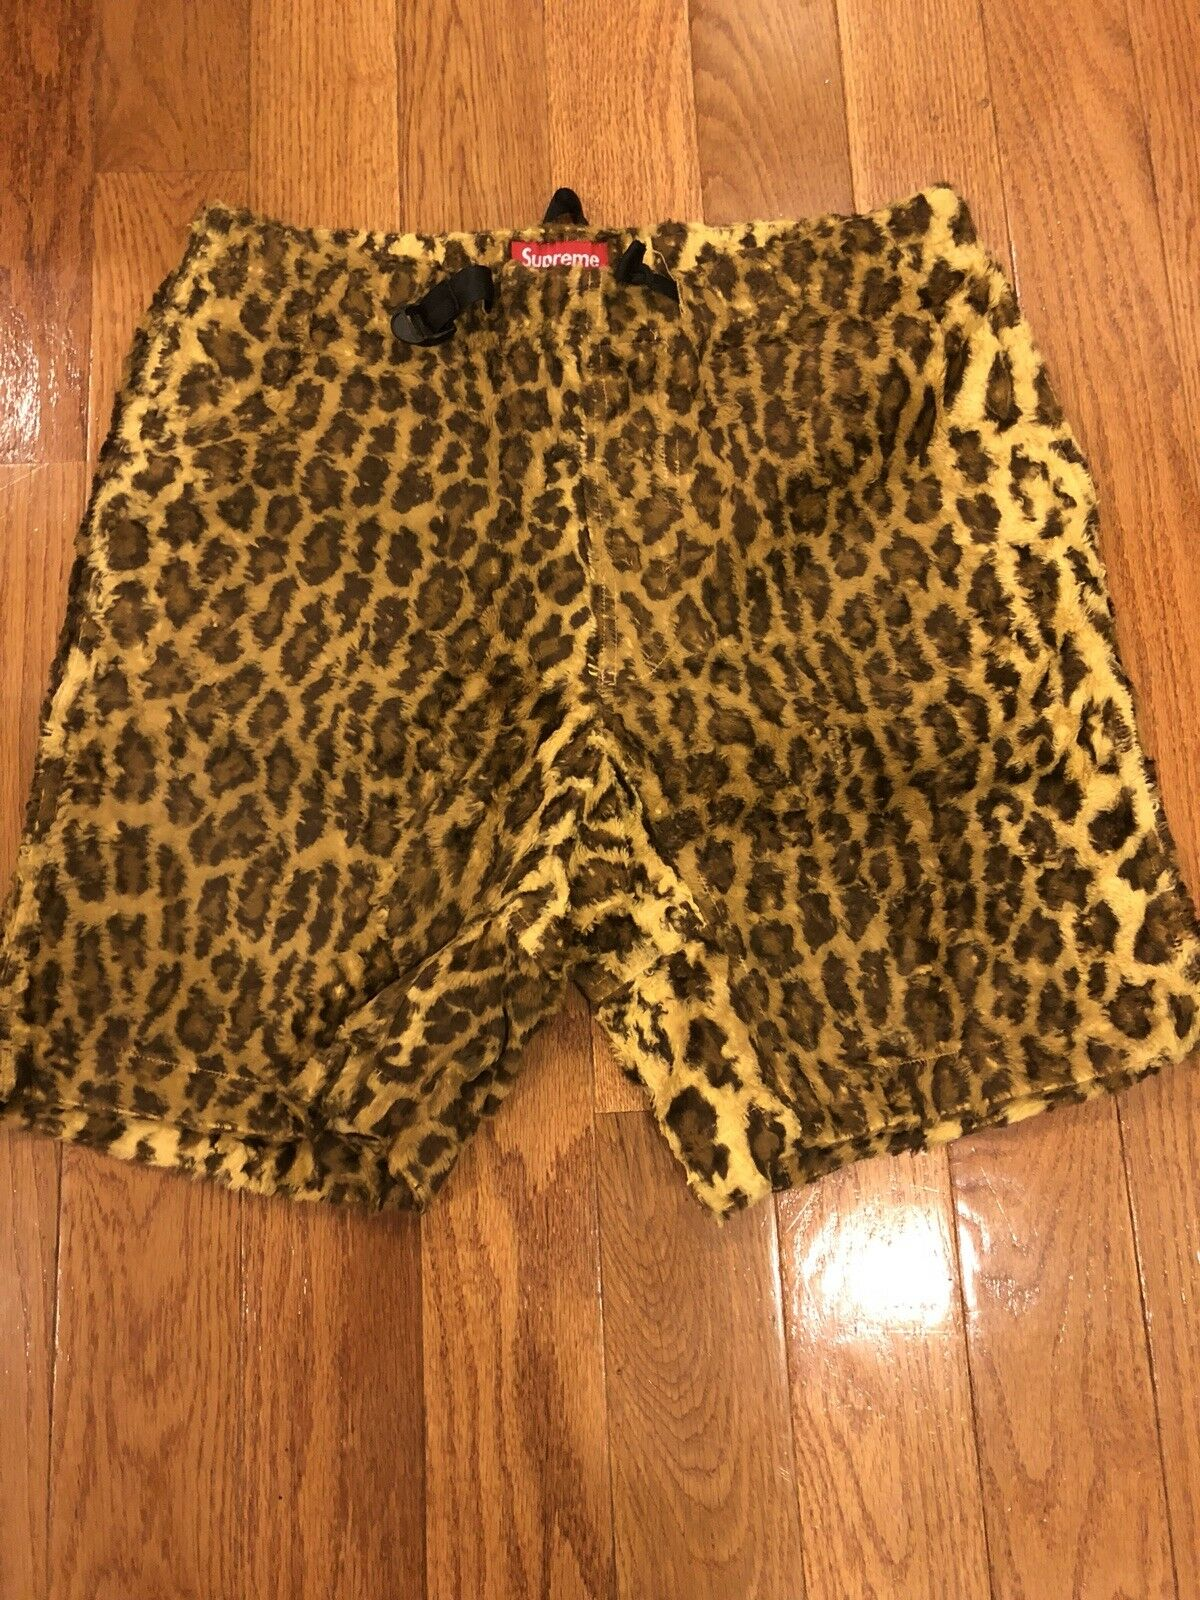 Supreme Leopard Shorts Atmos 32